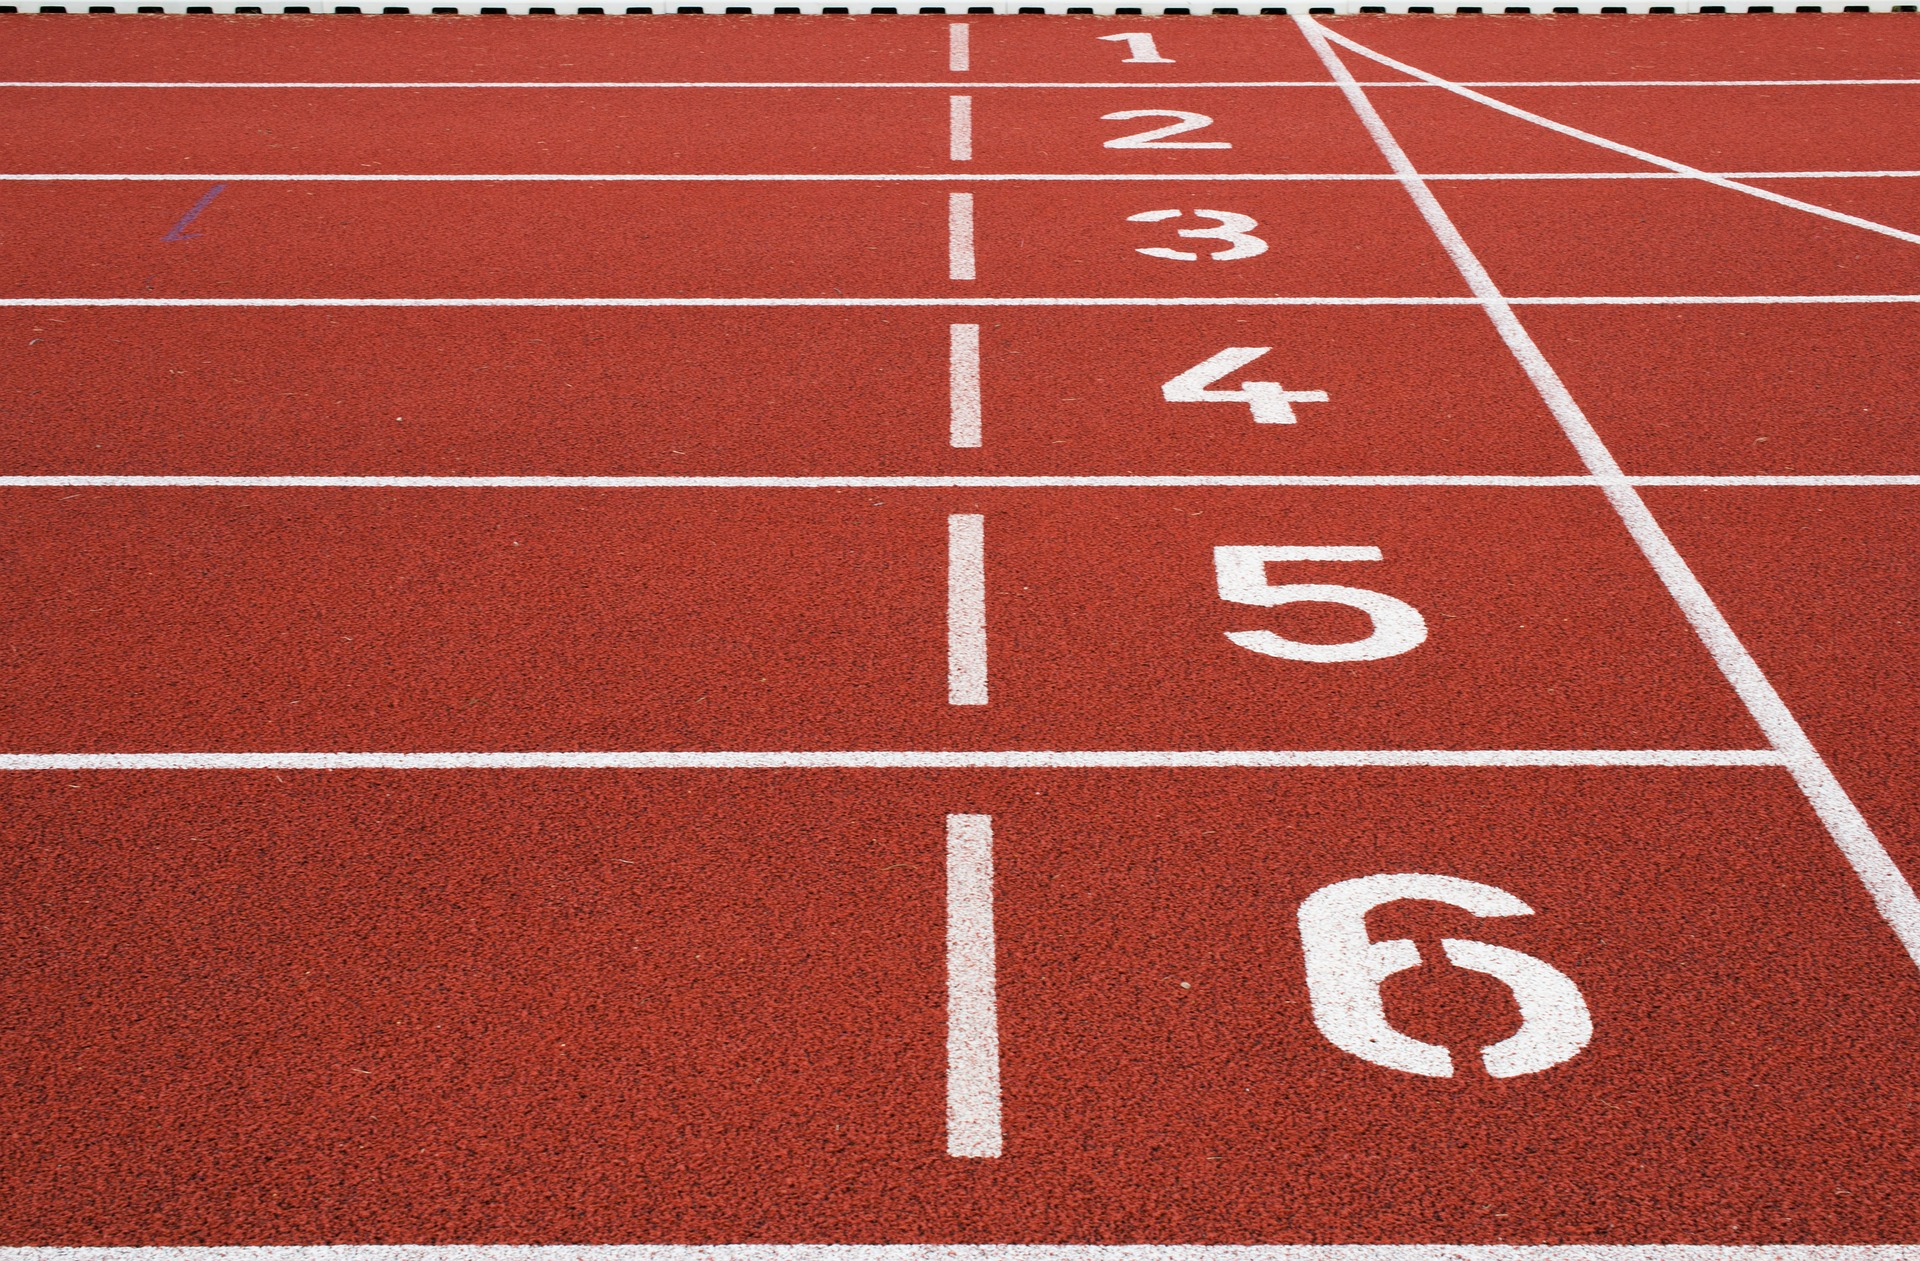 a track lane with numbers 1 to 6